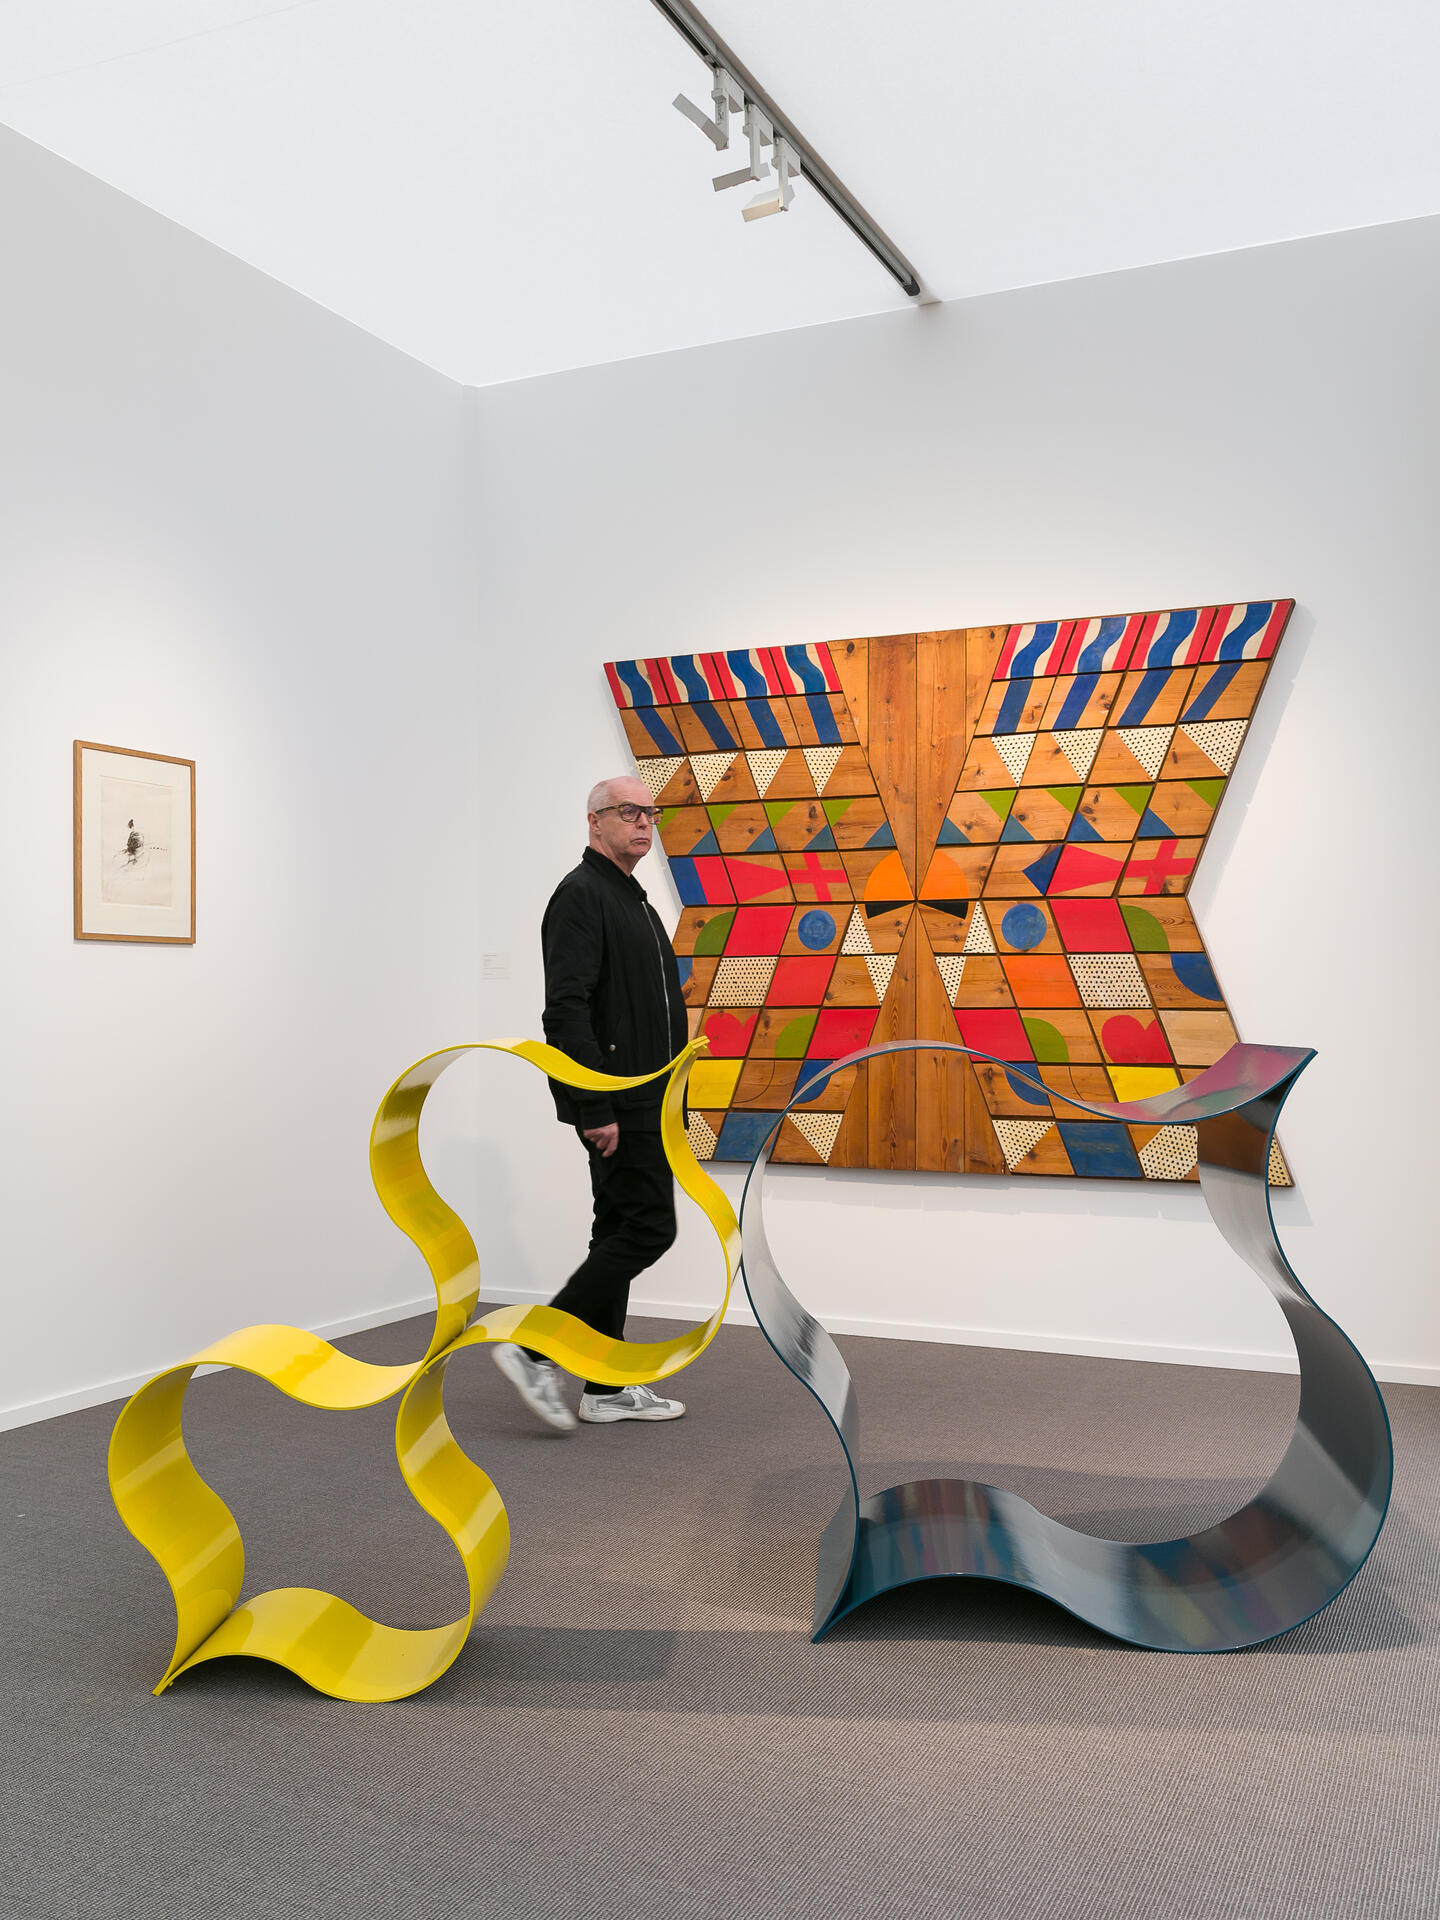 A man walking past a colourful painting and some sculptures